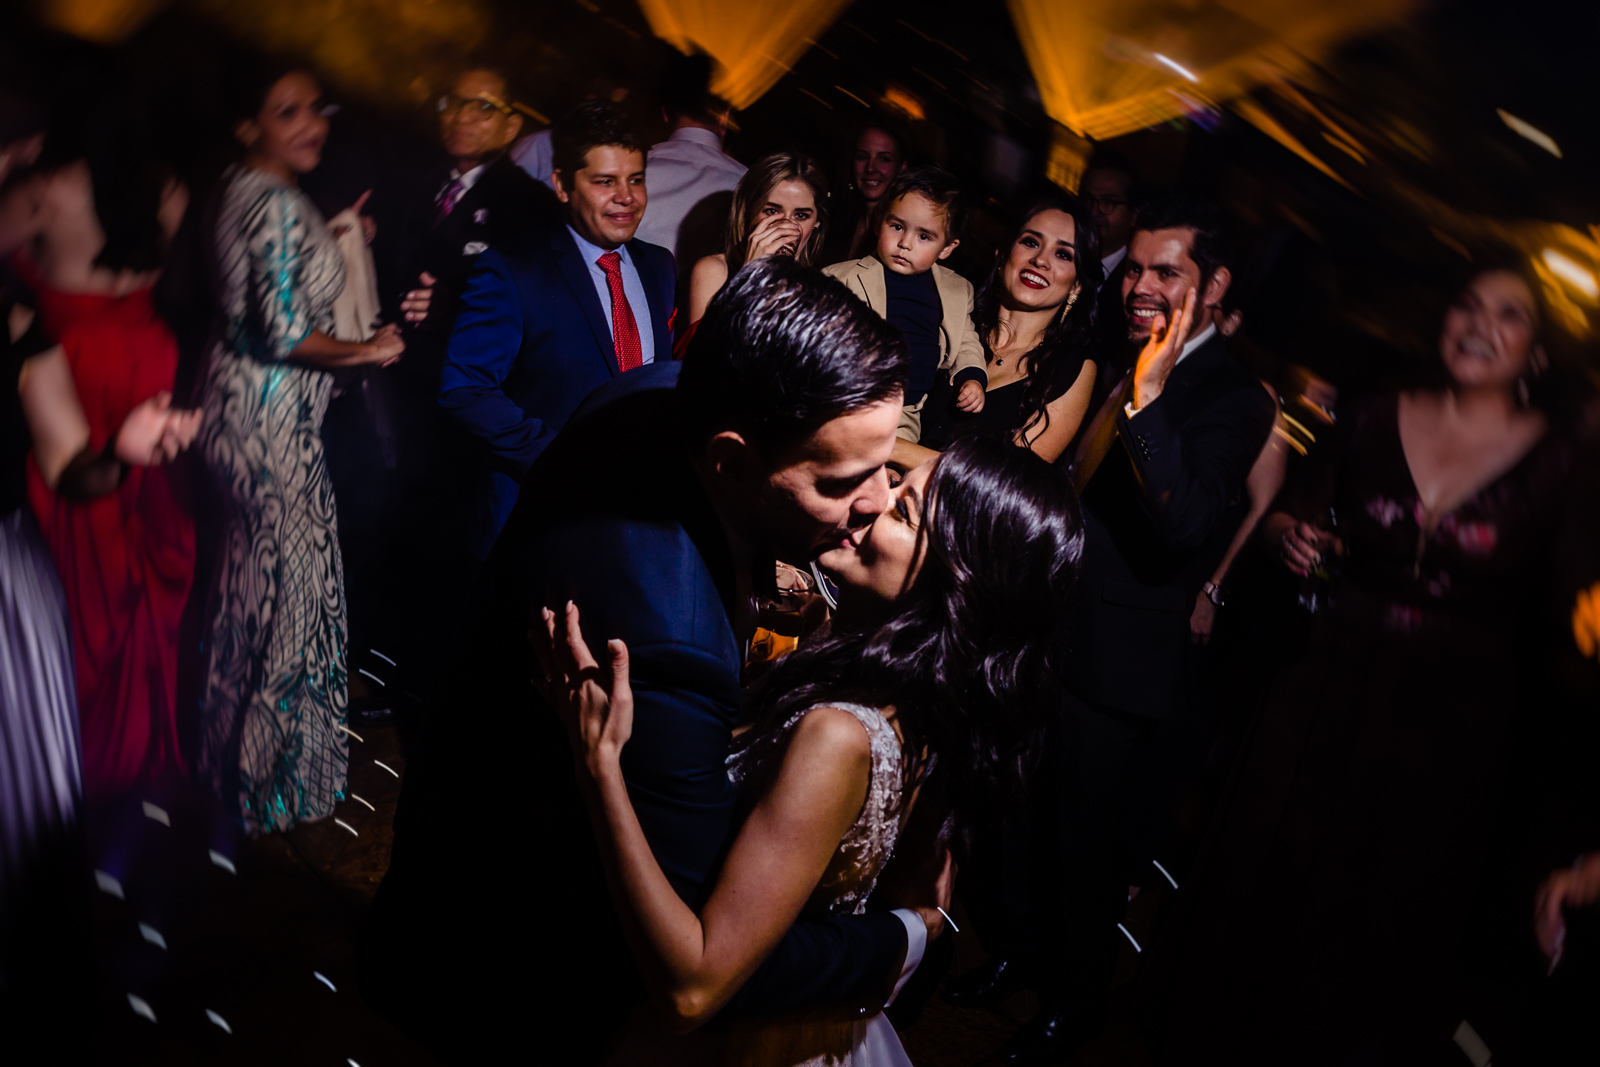 bride and groom kiss with all the friends behind them on the dance floor